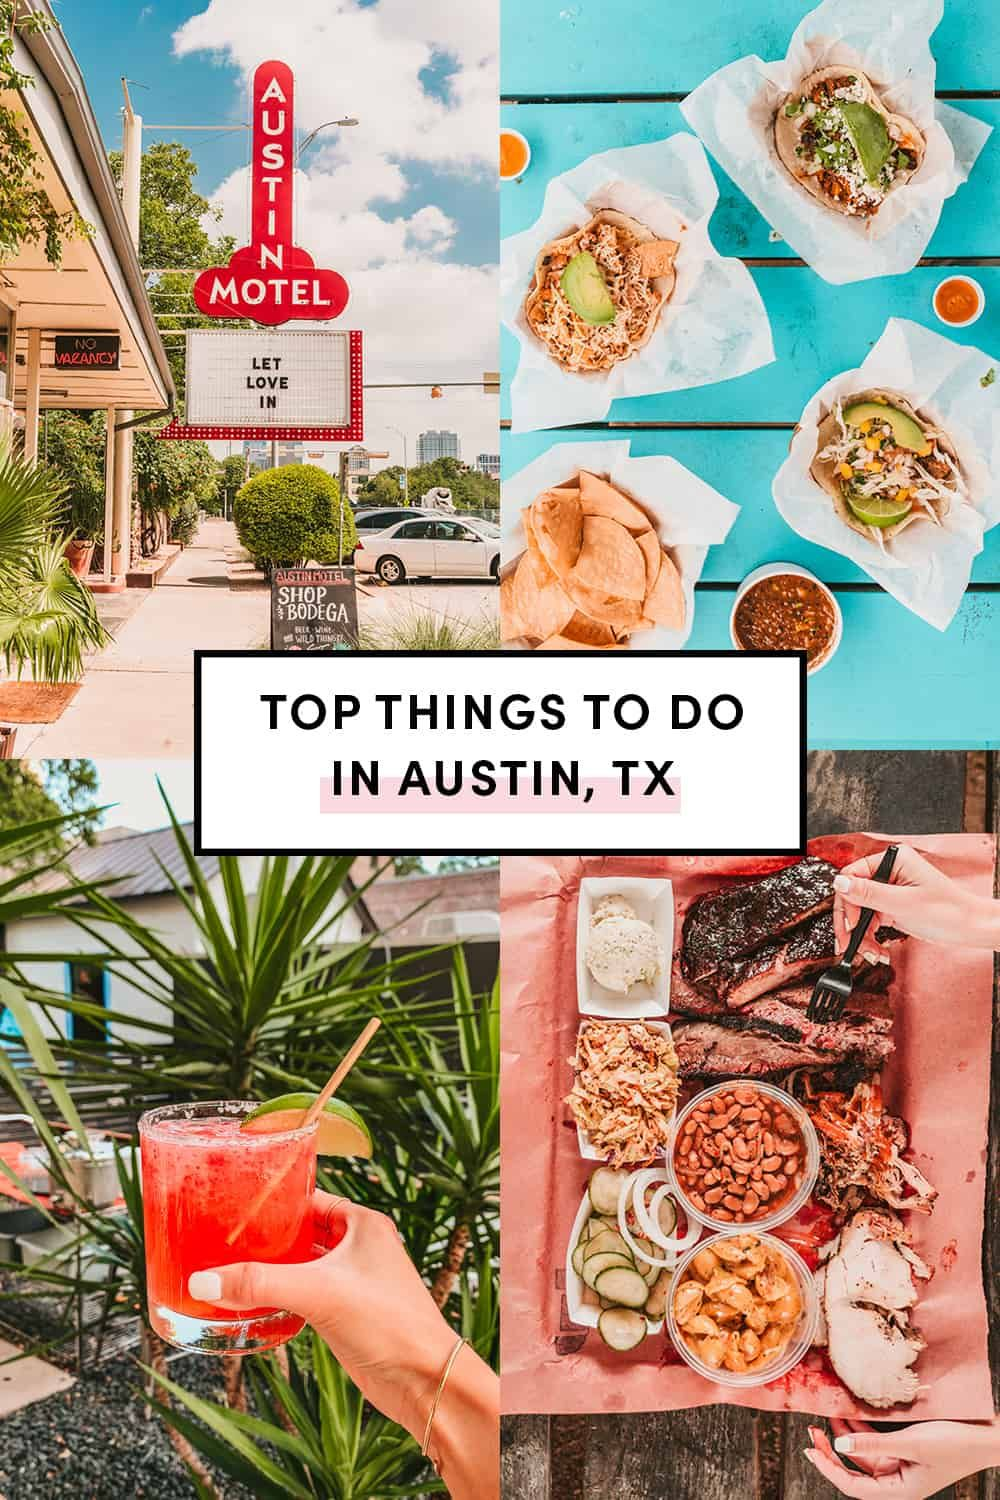 Top Things To Do In Austin Texas by A Taste Of Koko. Eat and play in Austin, Texas - explore this amazing city in 2020! #austintravel #austintexas #exploreaustin www.atasteofkoko.com